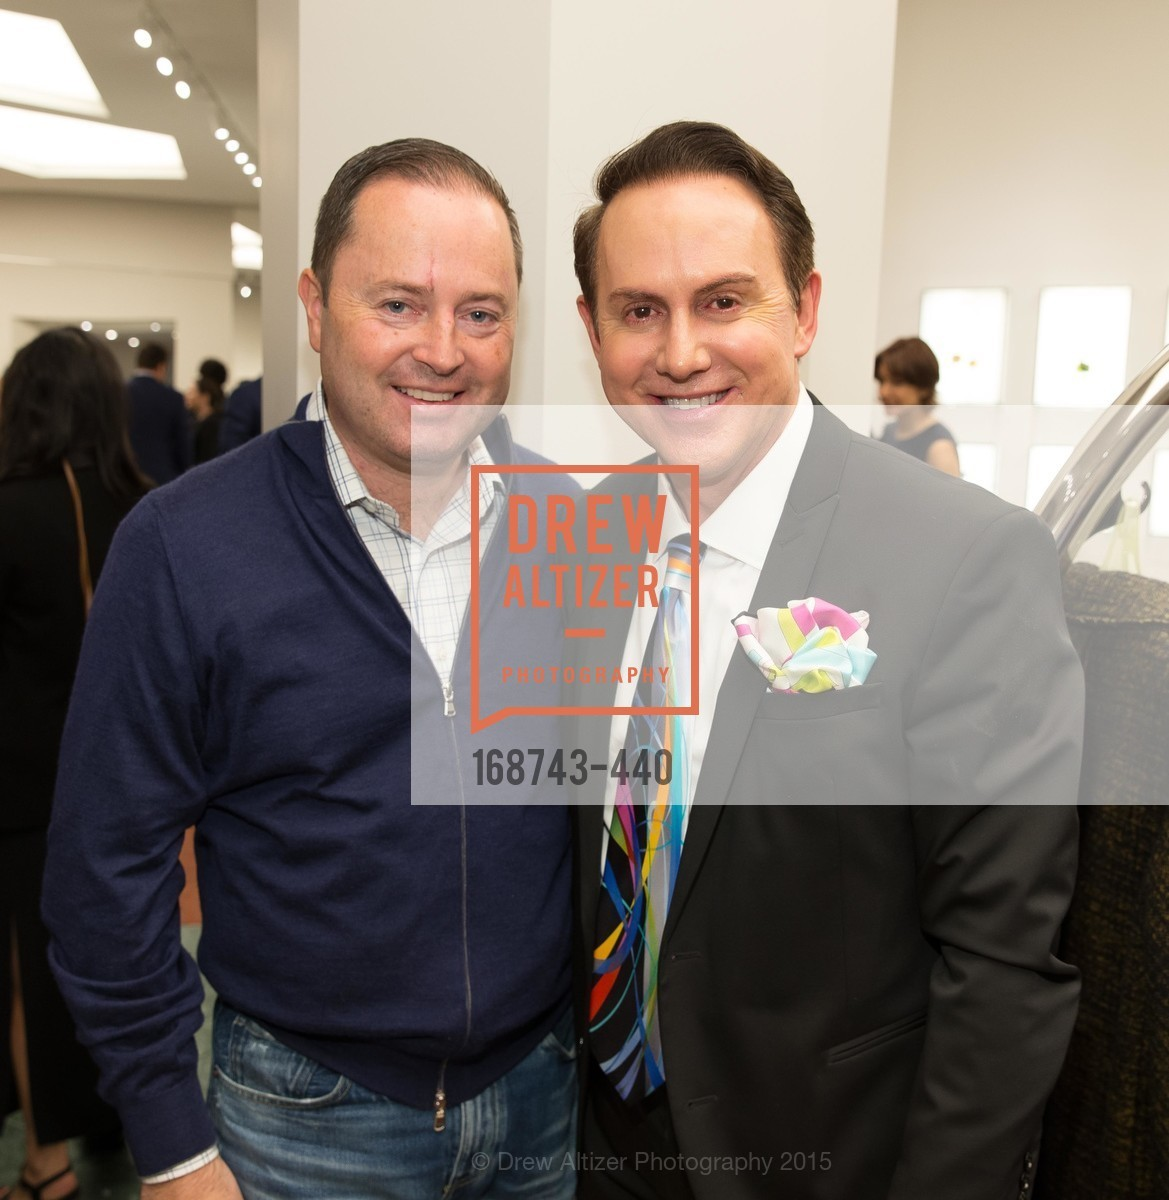 Edward Dubrovsky, Joel Godrich, W Magazine and BAMPFA Celebrate the Opening of the Marni San Francisco Boutique with co-hosts Sabrina Buell and Alison Pincus, Marni San Francisco. 77 Maiden Lane, November 4th, 2015,Drew Altizer, Drew Altizer Photography, full-service agency, private events, San Francisco photographer, photographer california